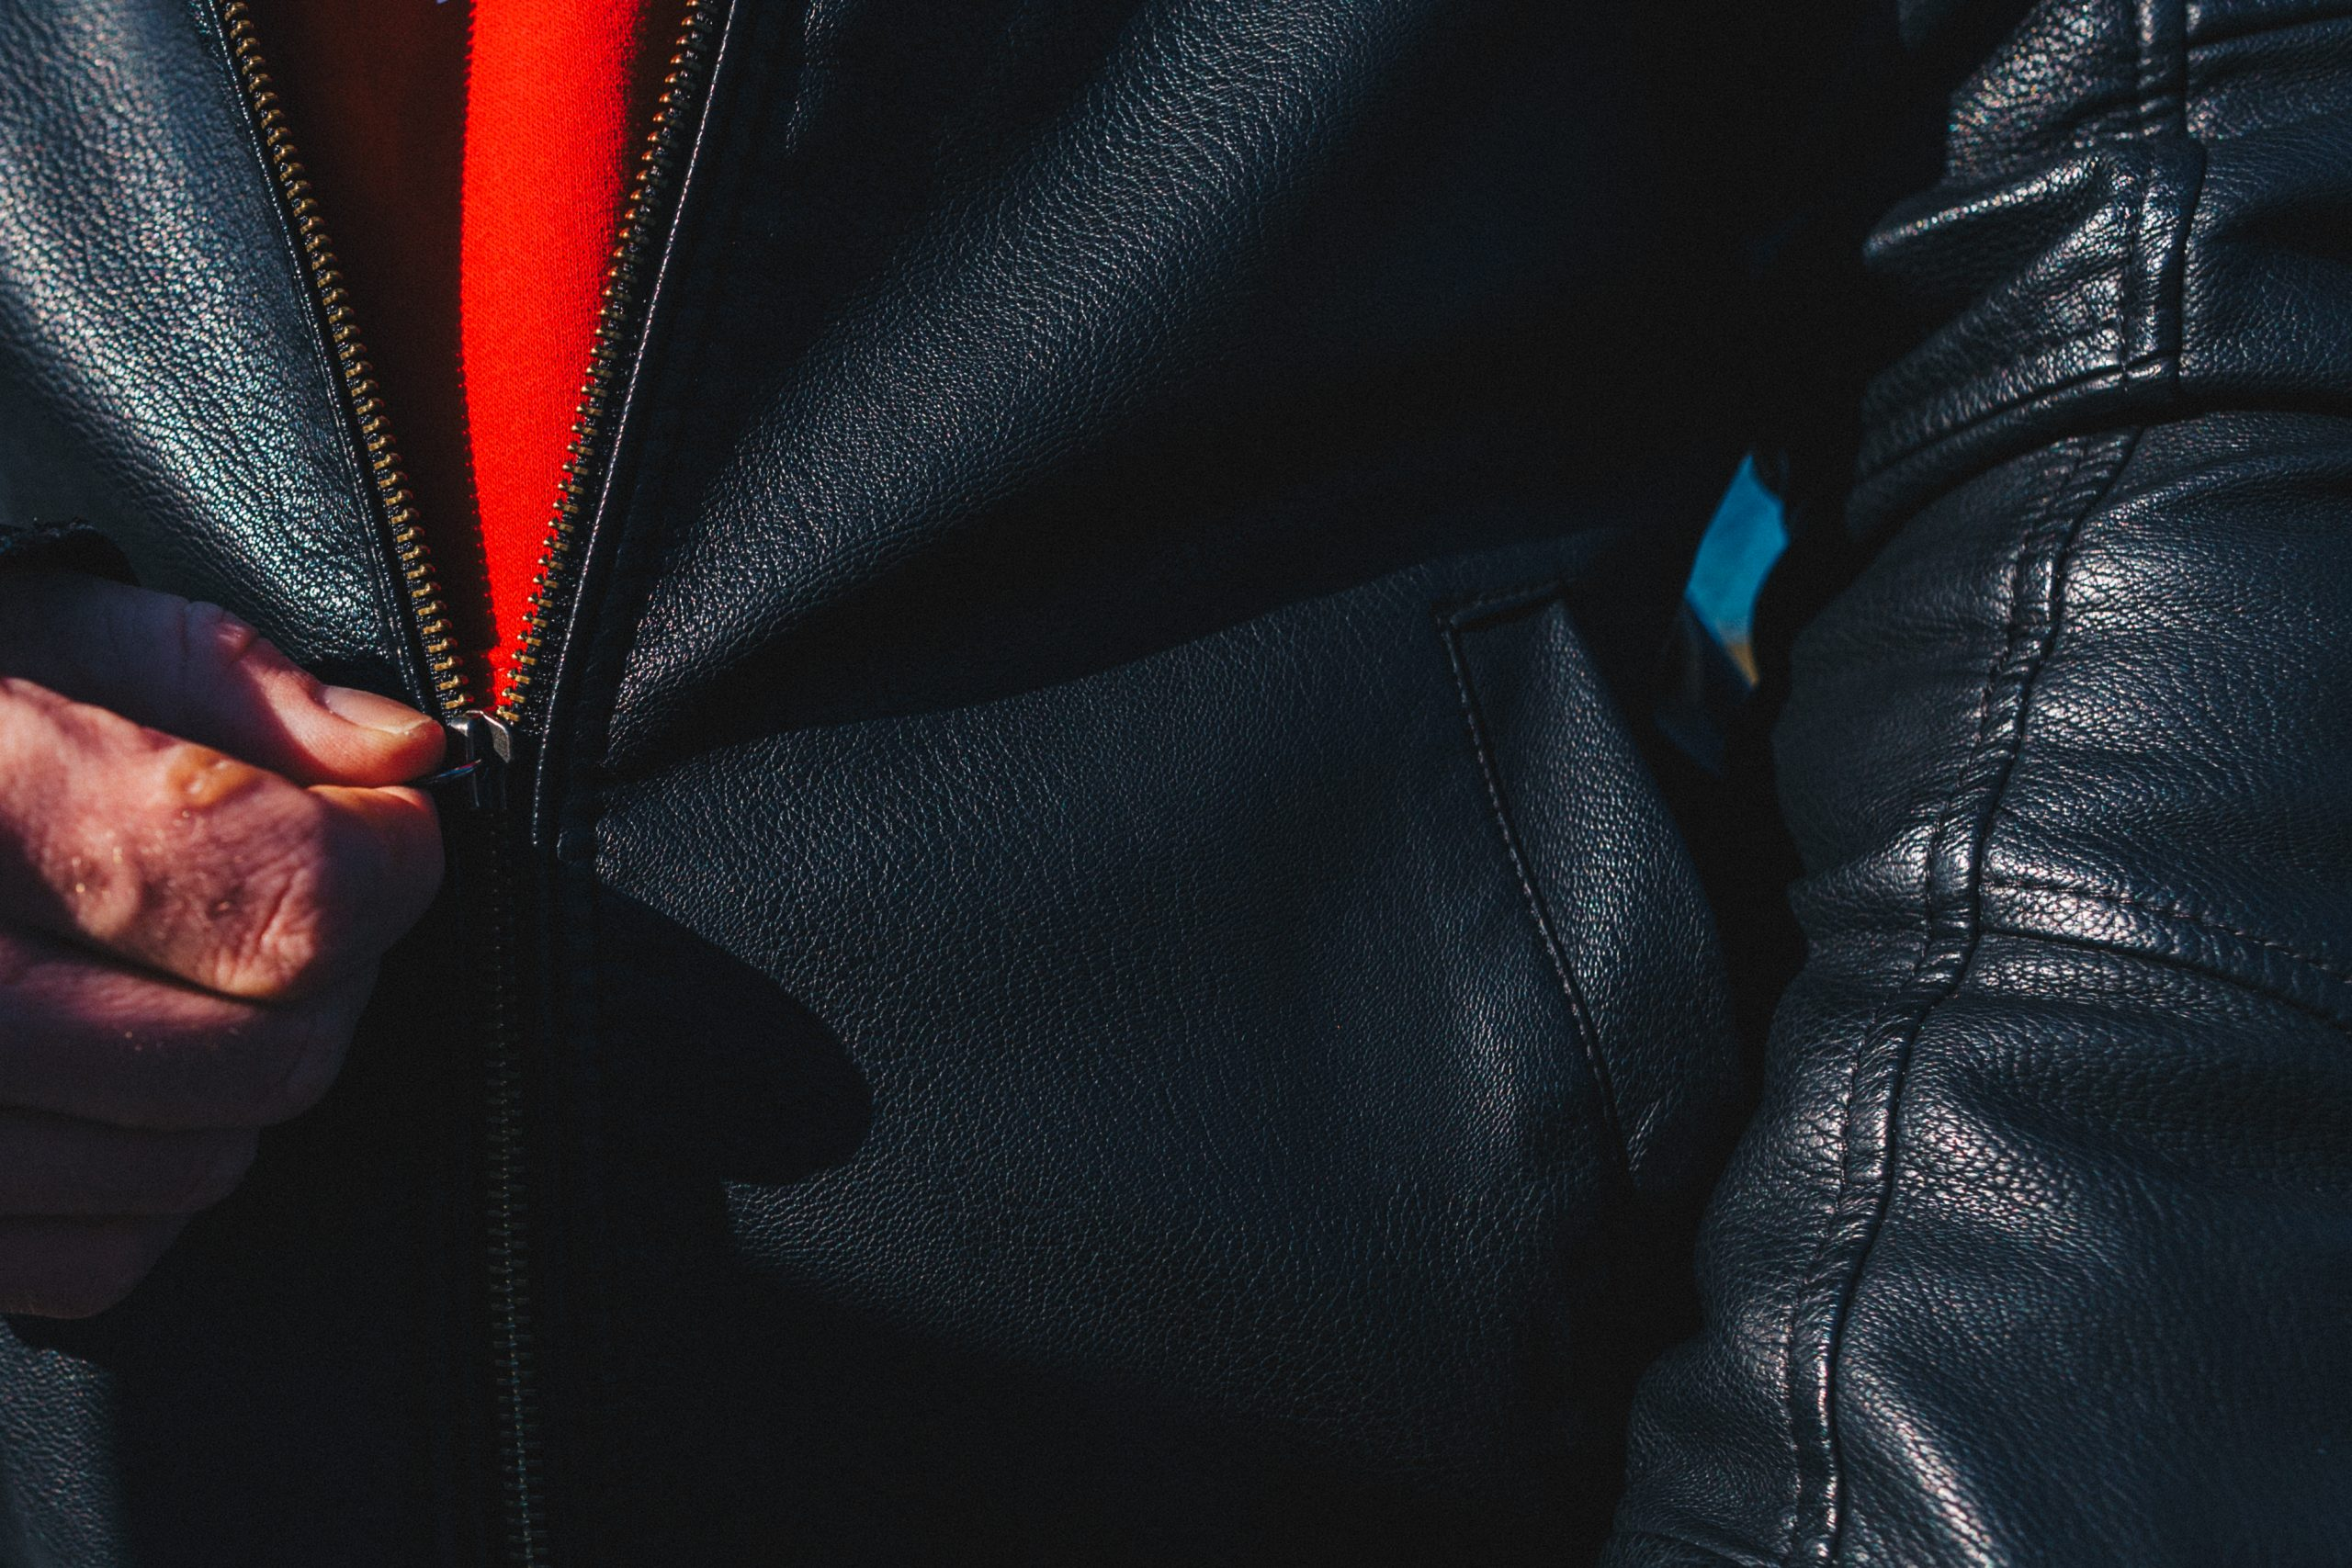 Zipper of the leather jacket